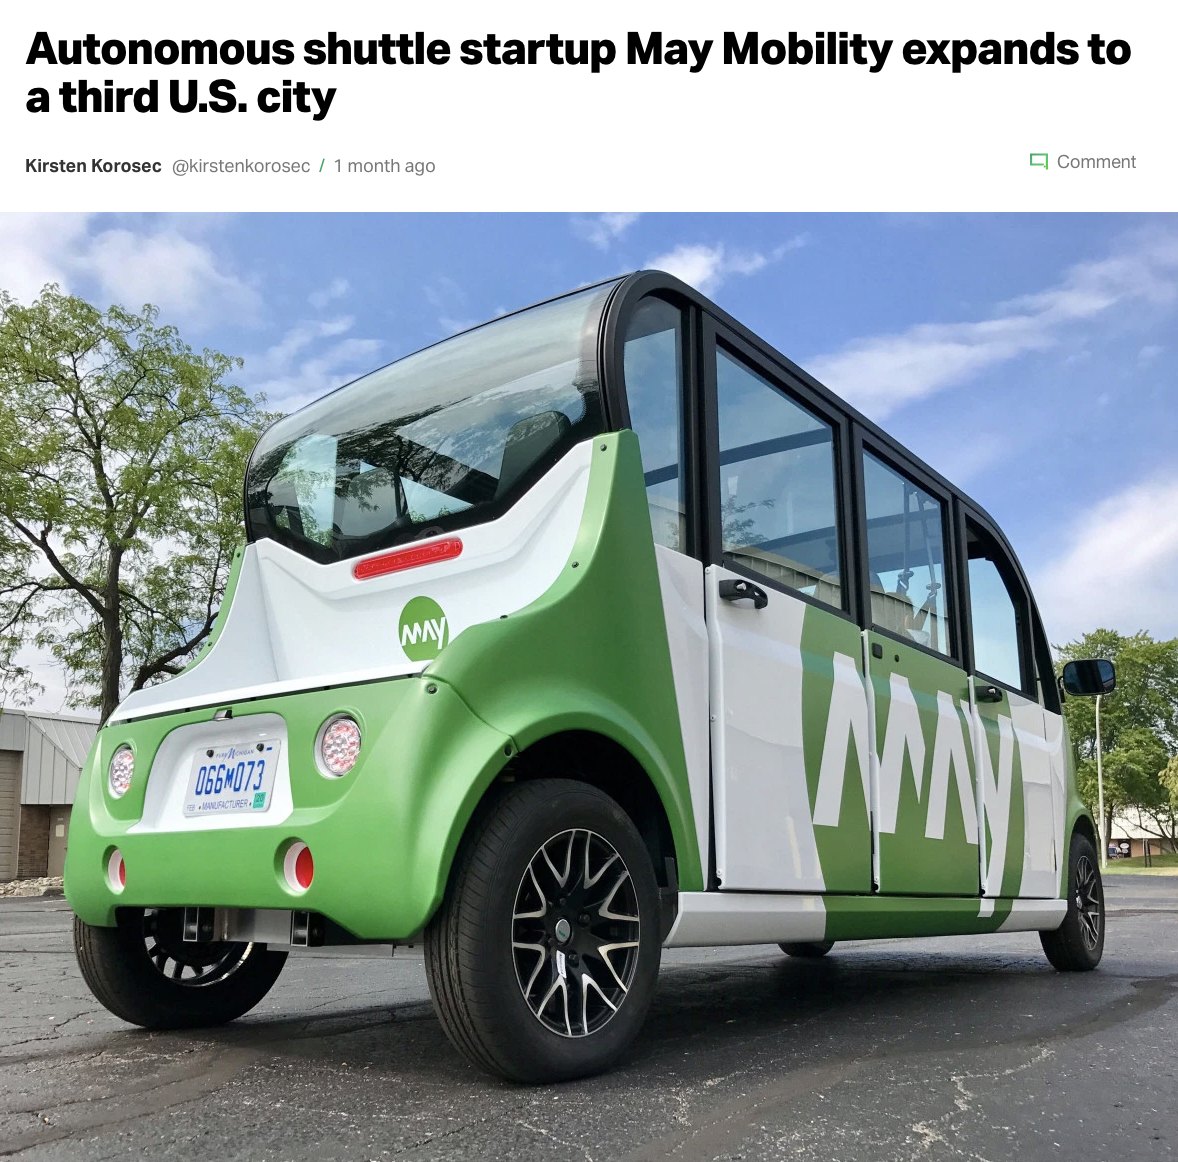 Techcrunch_May Mobility